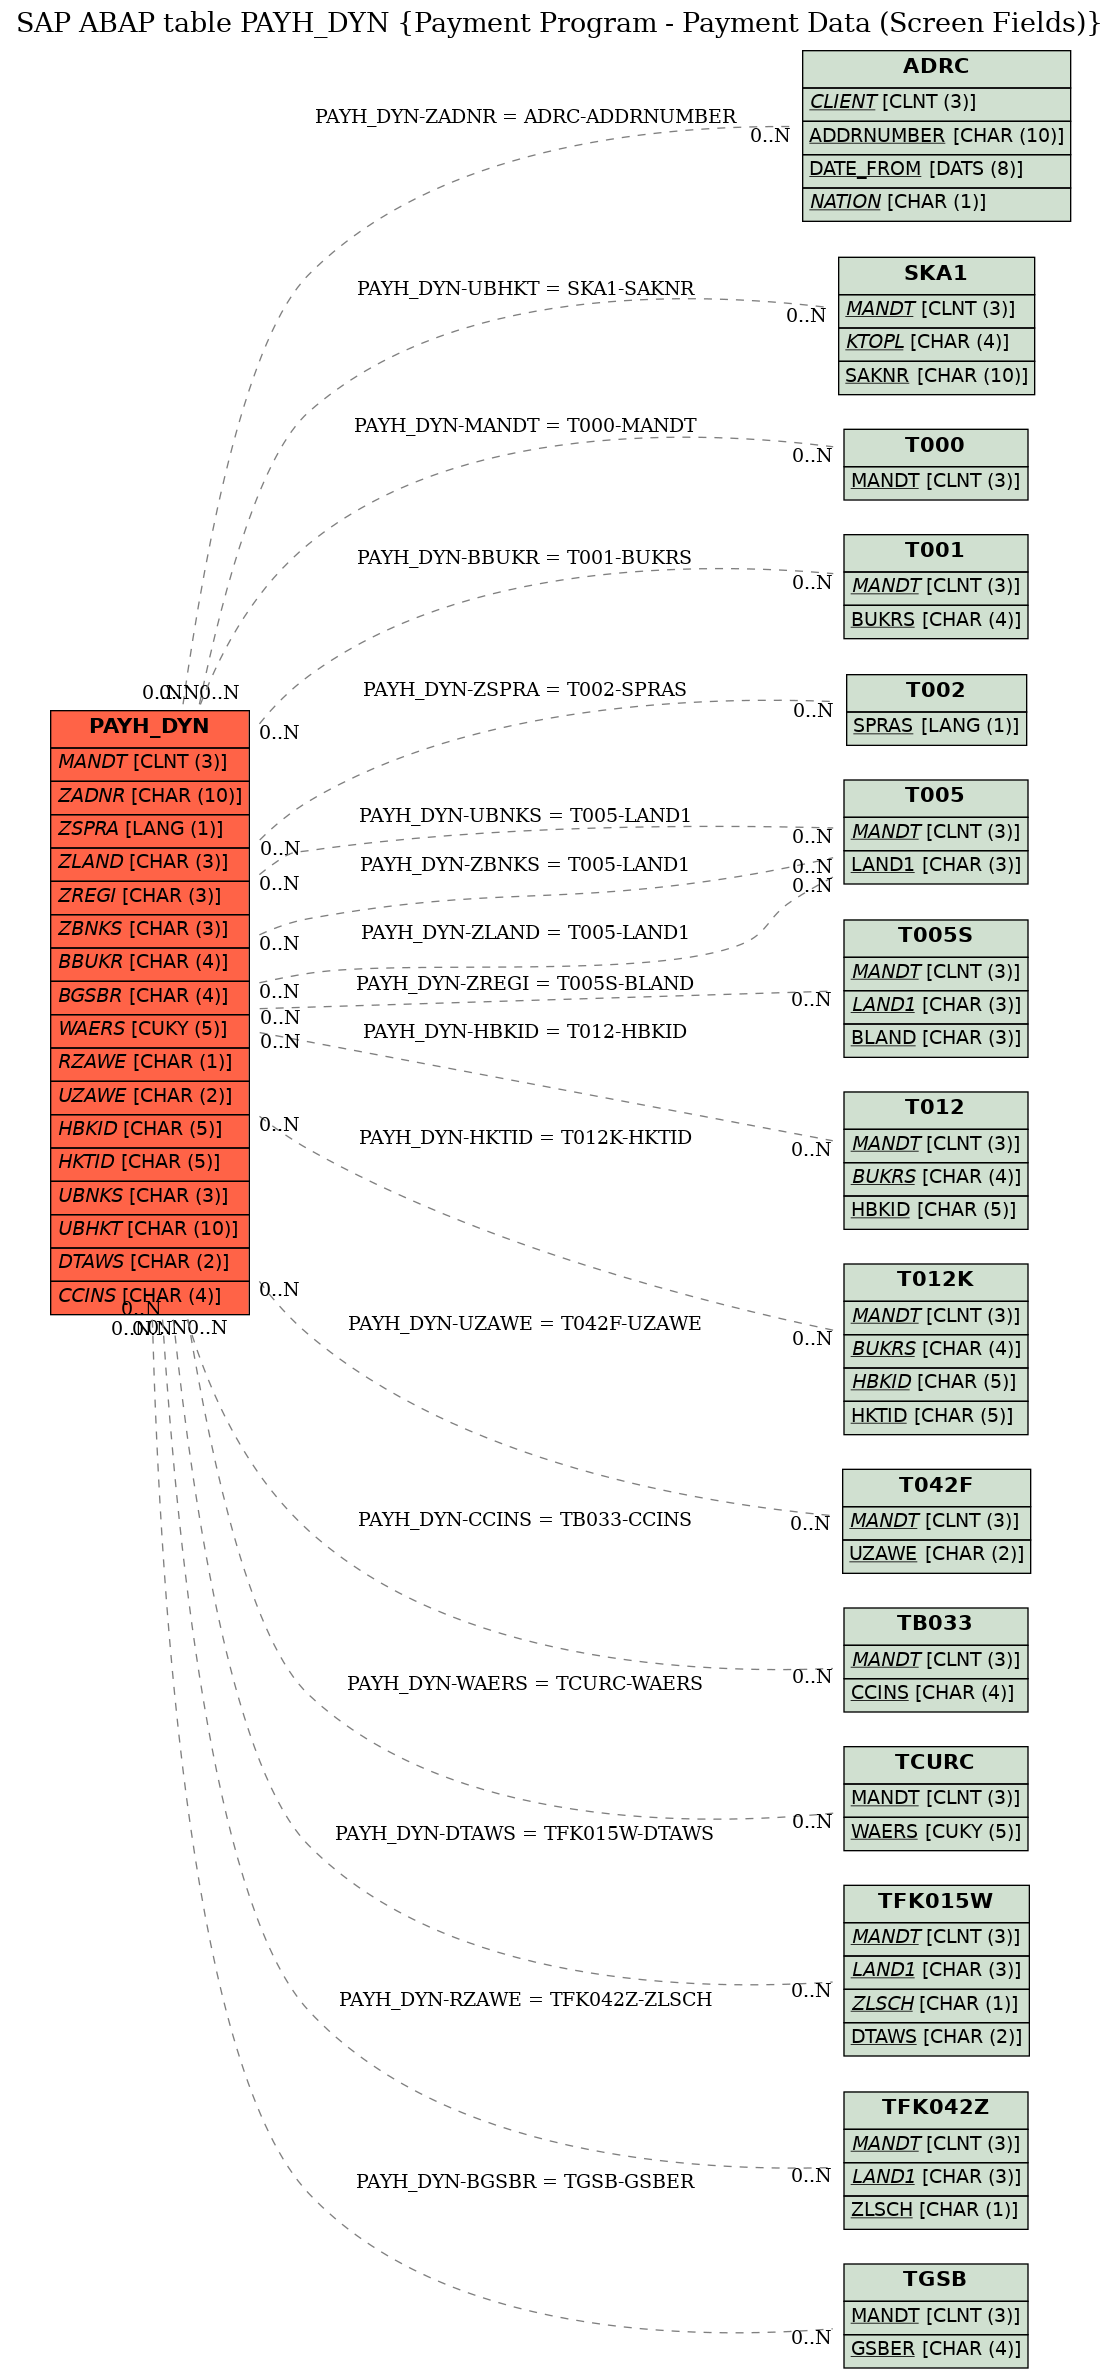 E-R Diagram for table PAYH_DYN (Payment Program - Payment Data (Screen Fields))